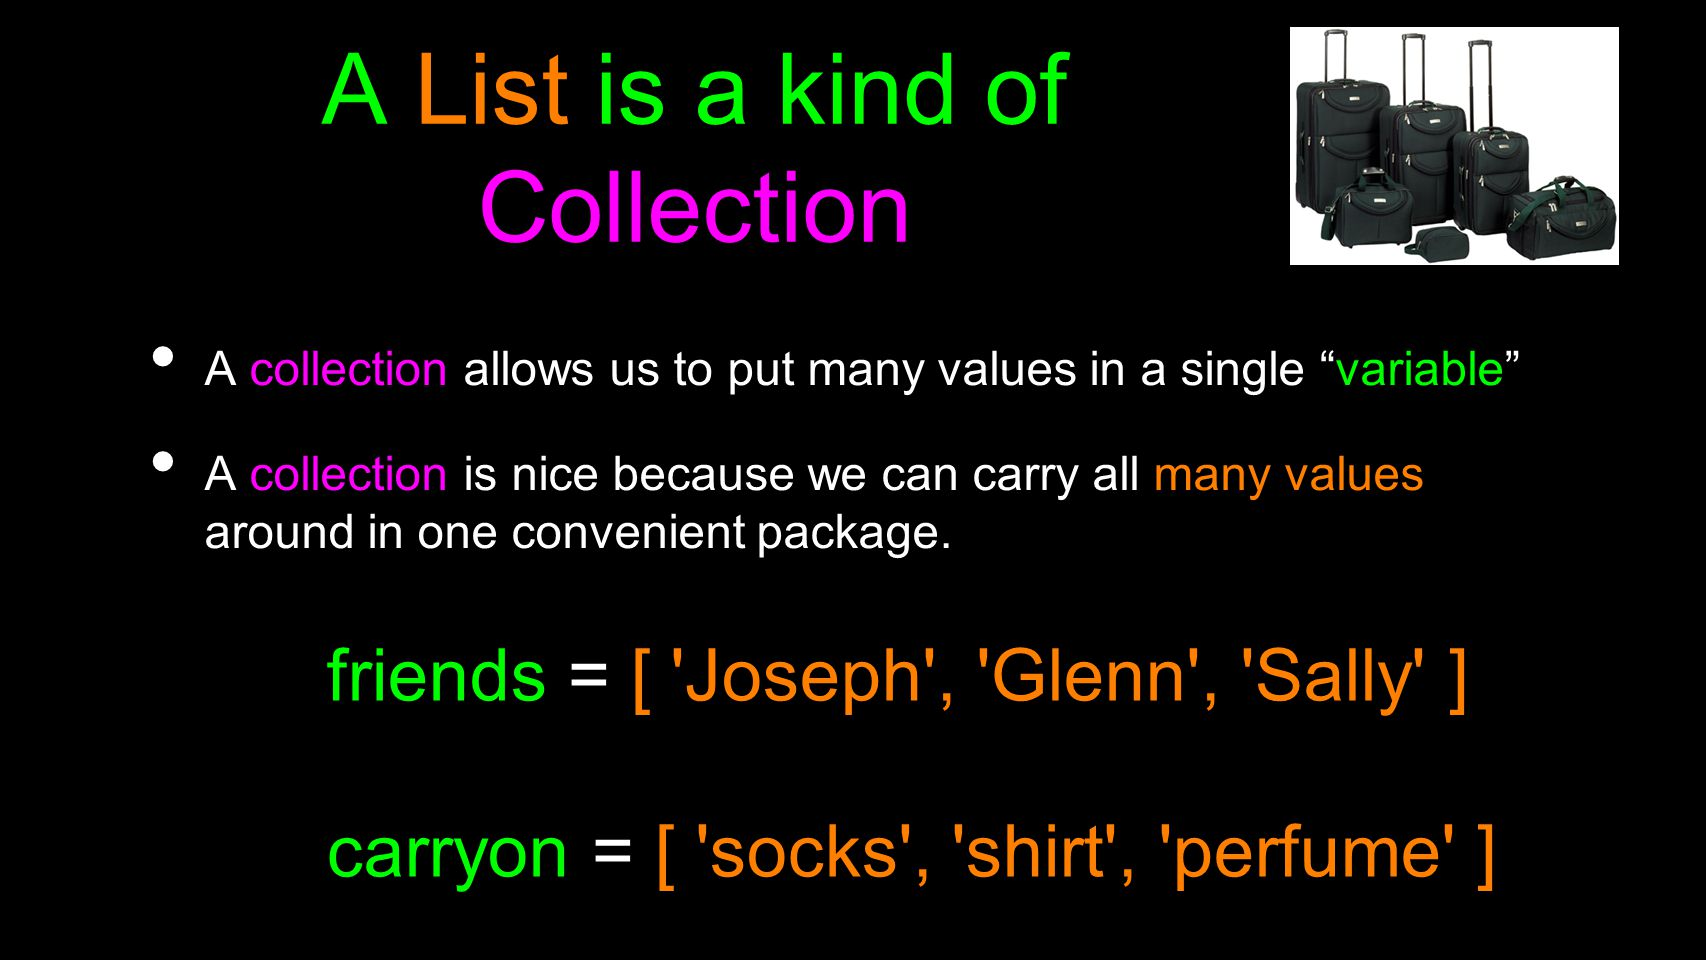 A List is a kind of Collection